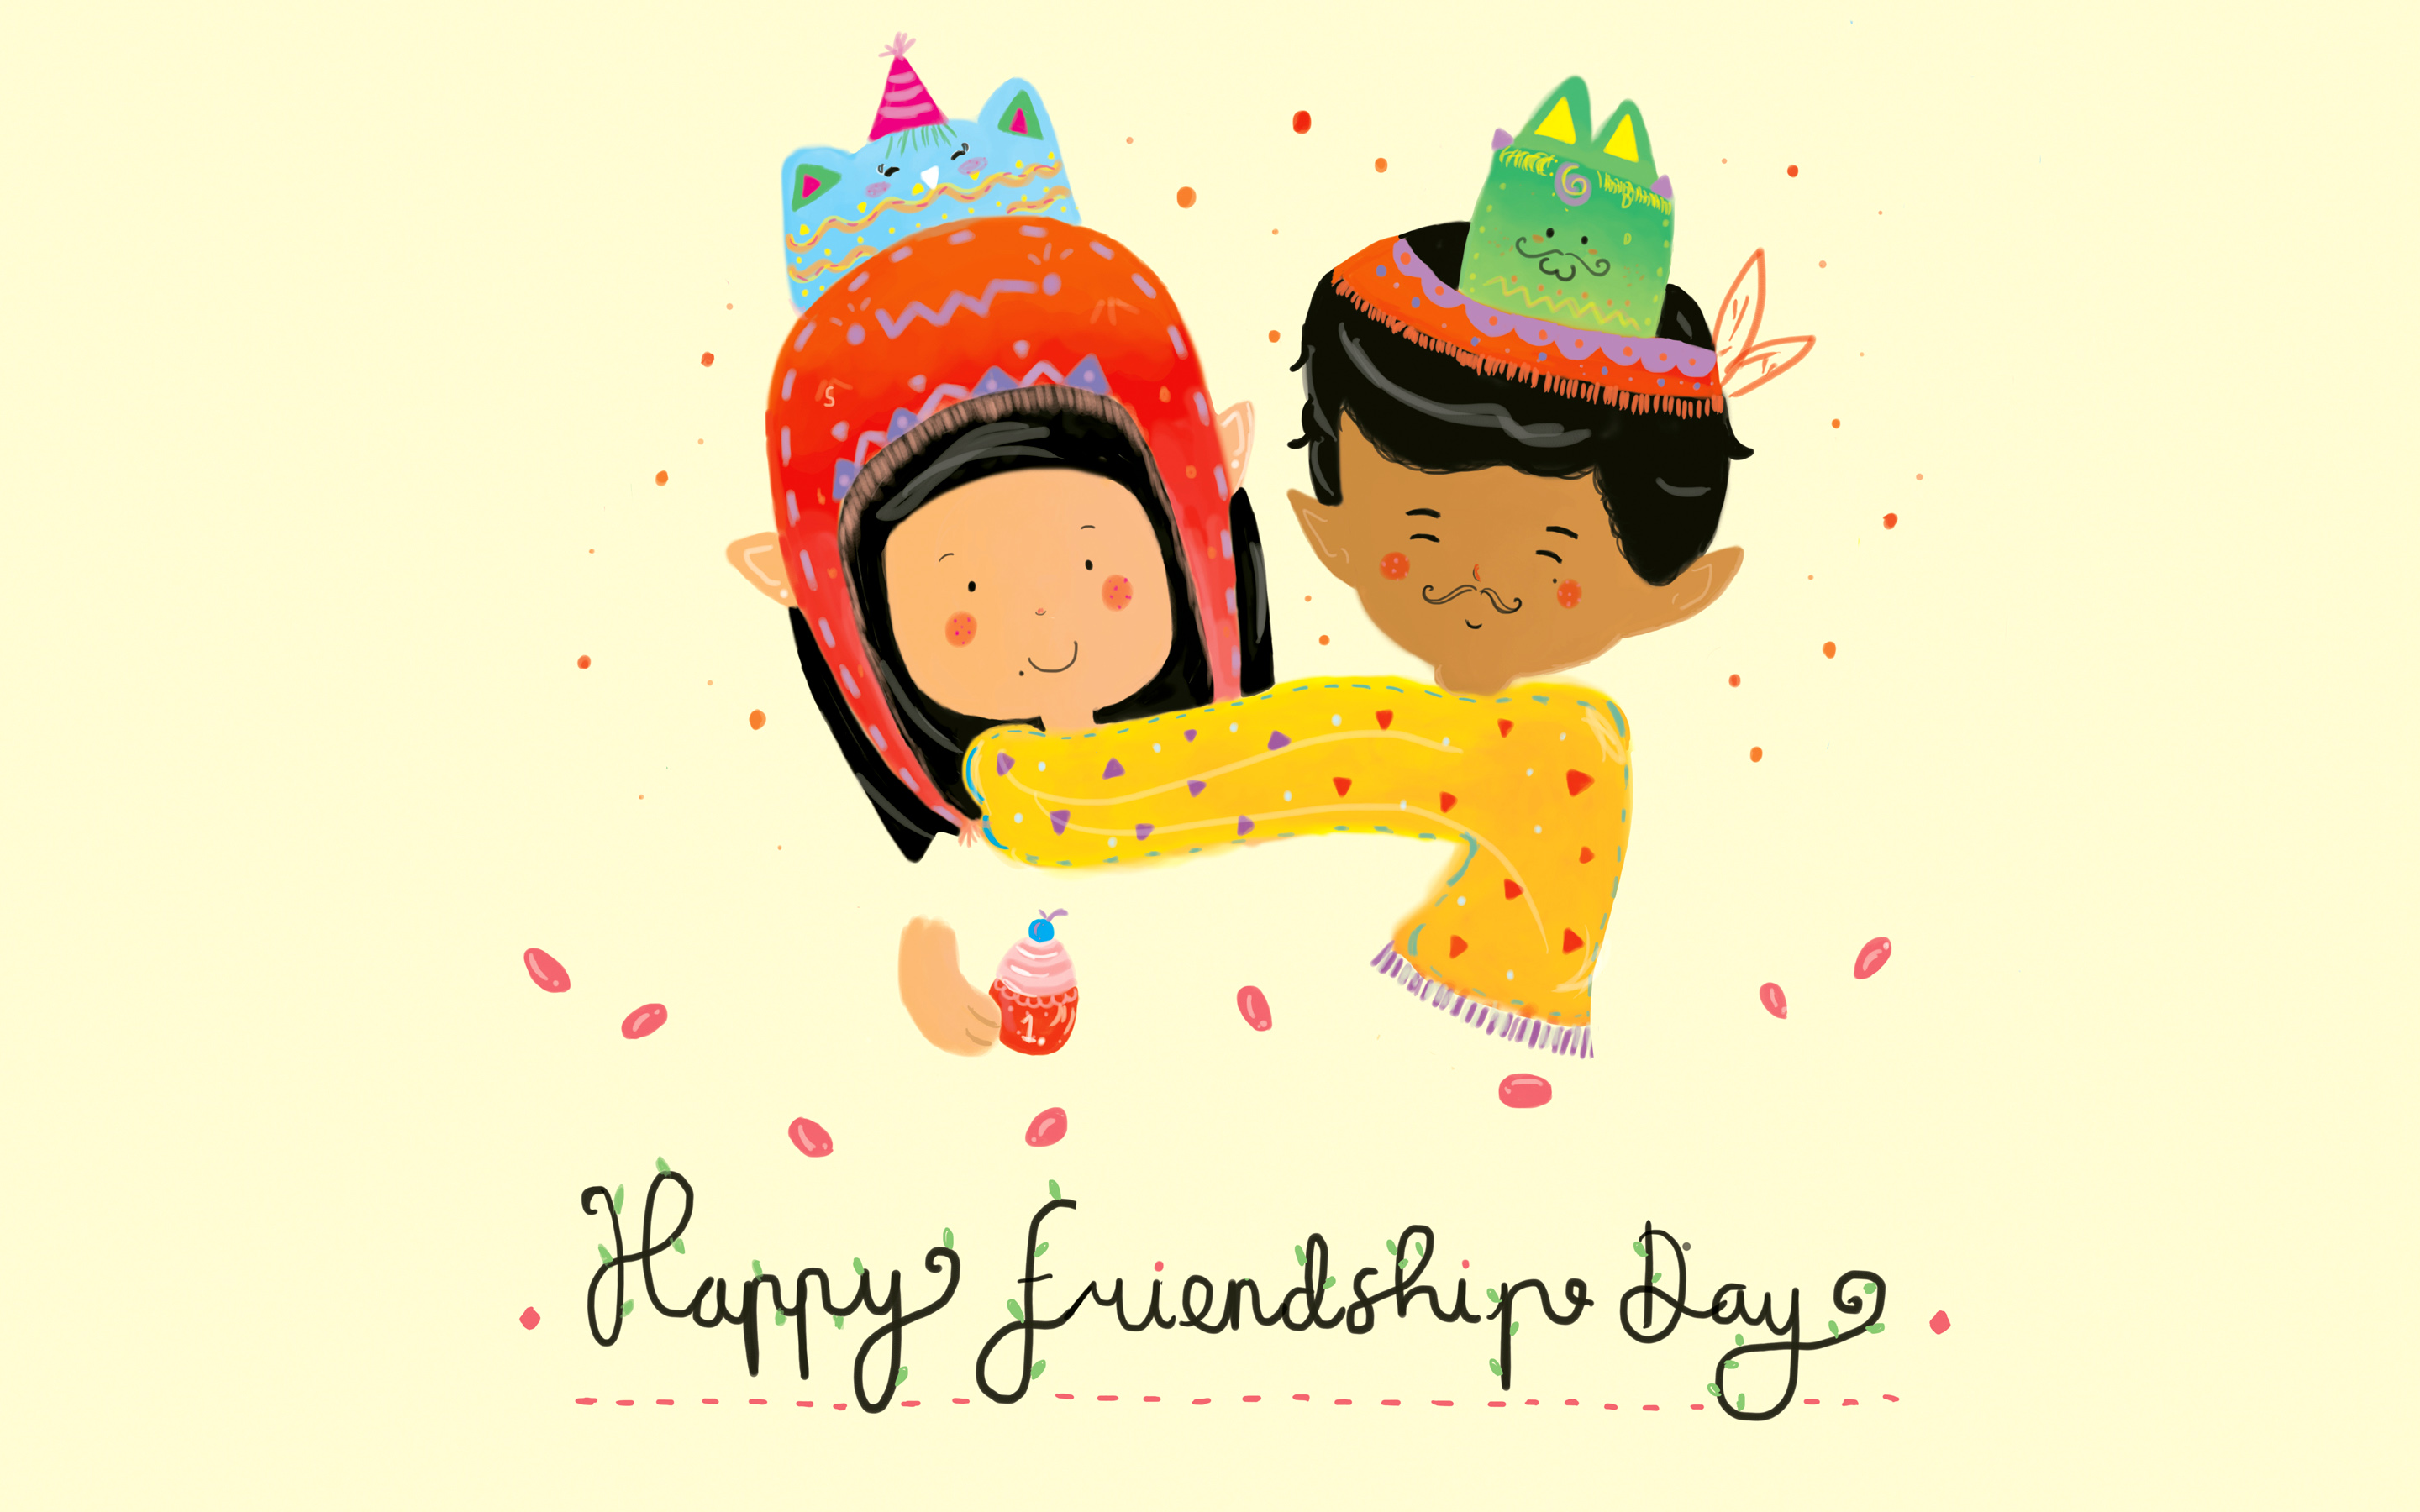 Happy Friendship Day 2012